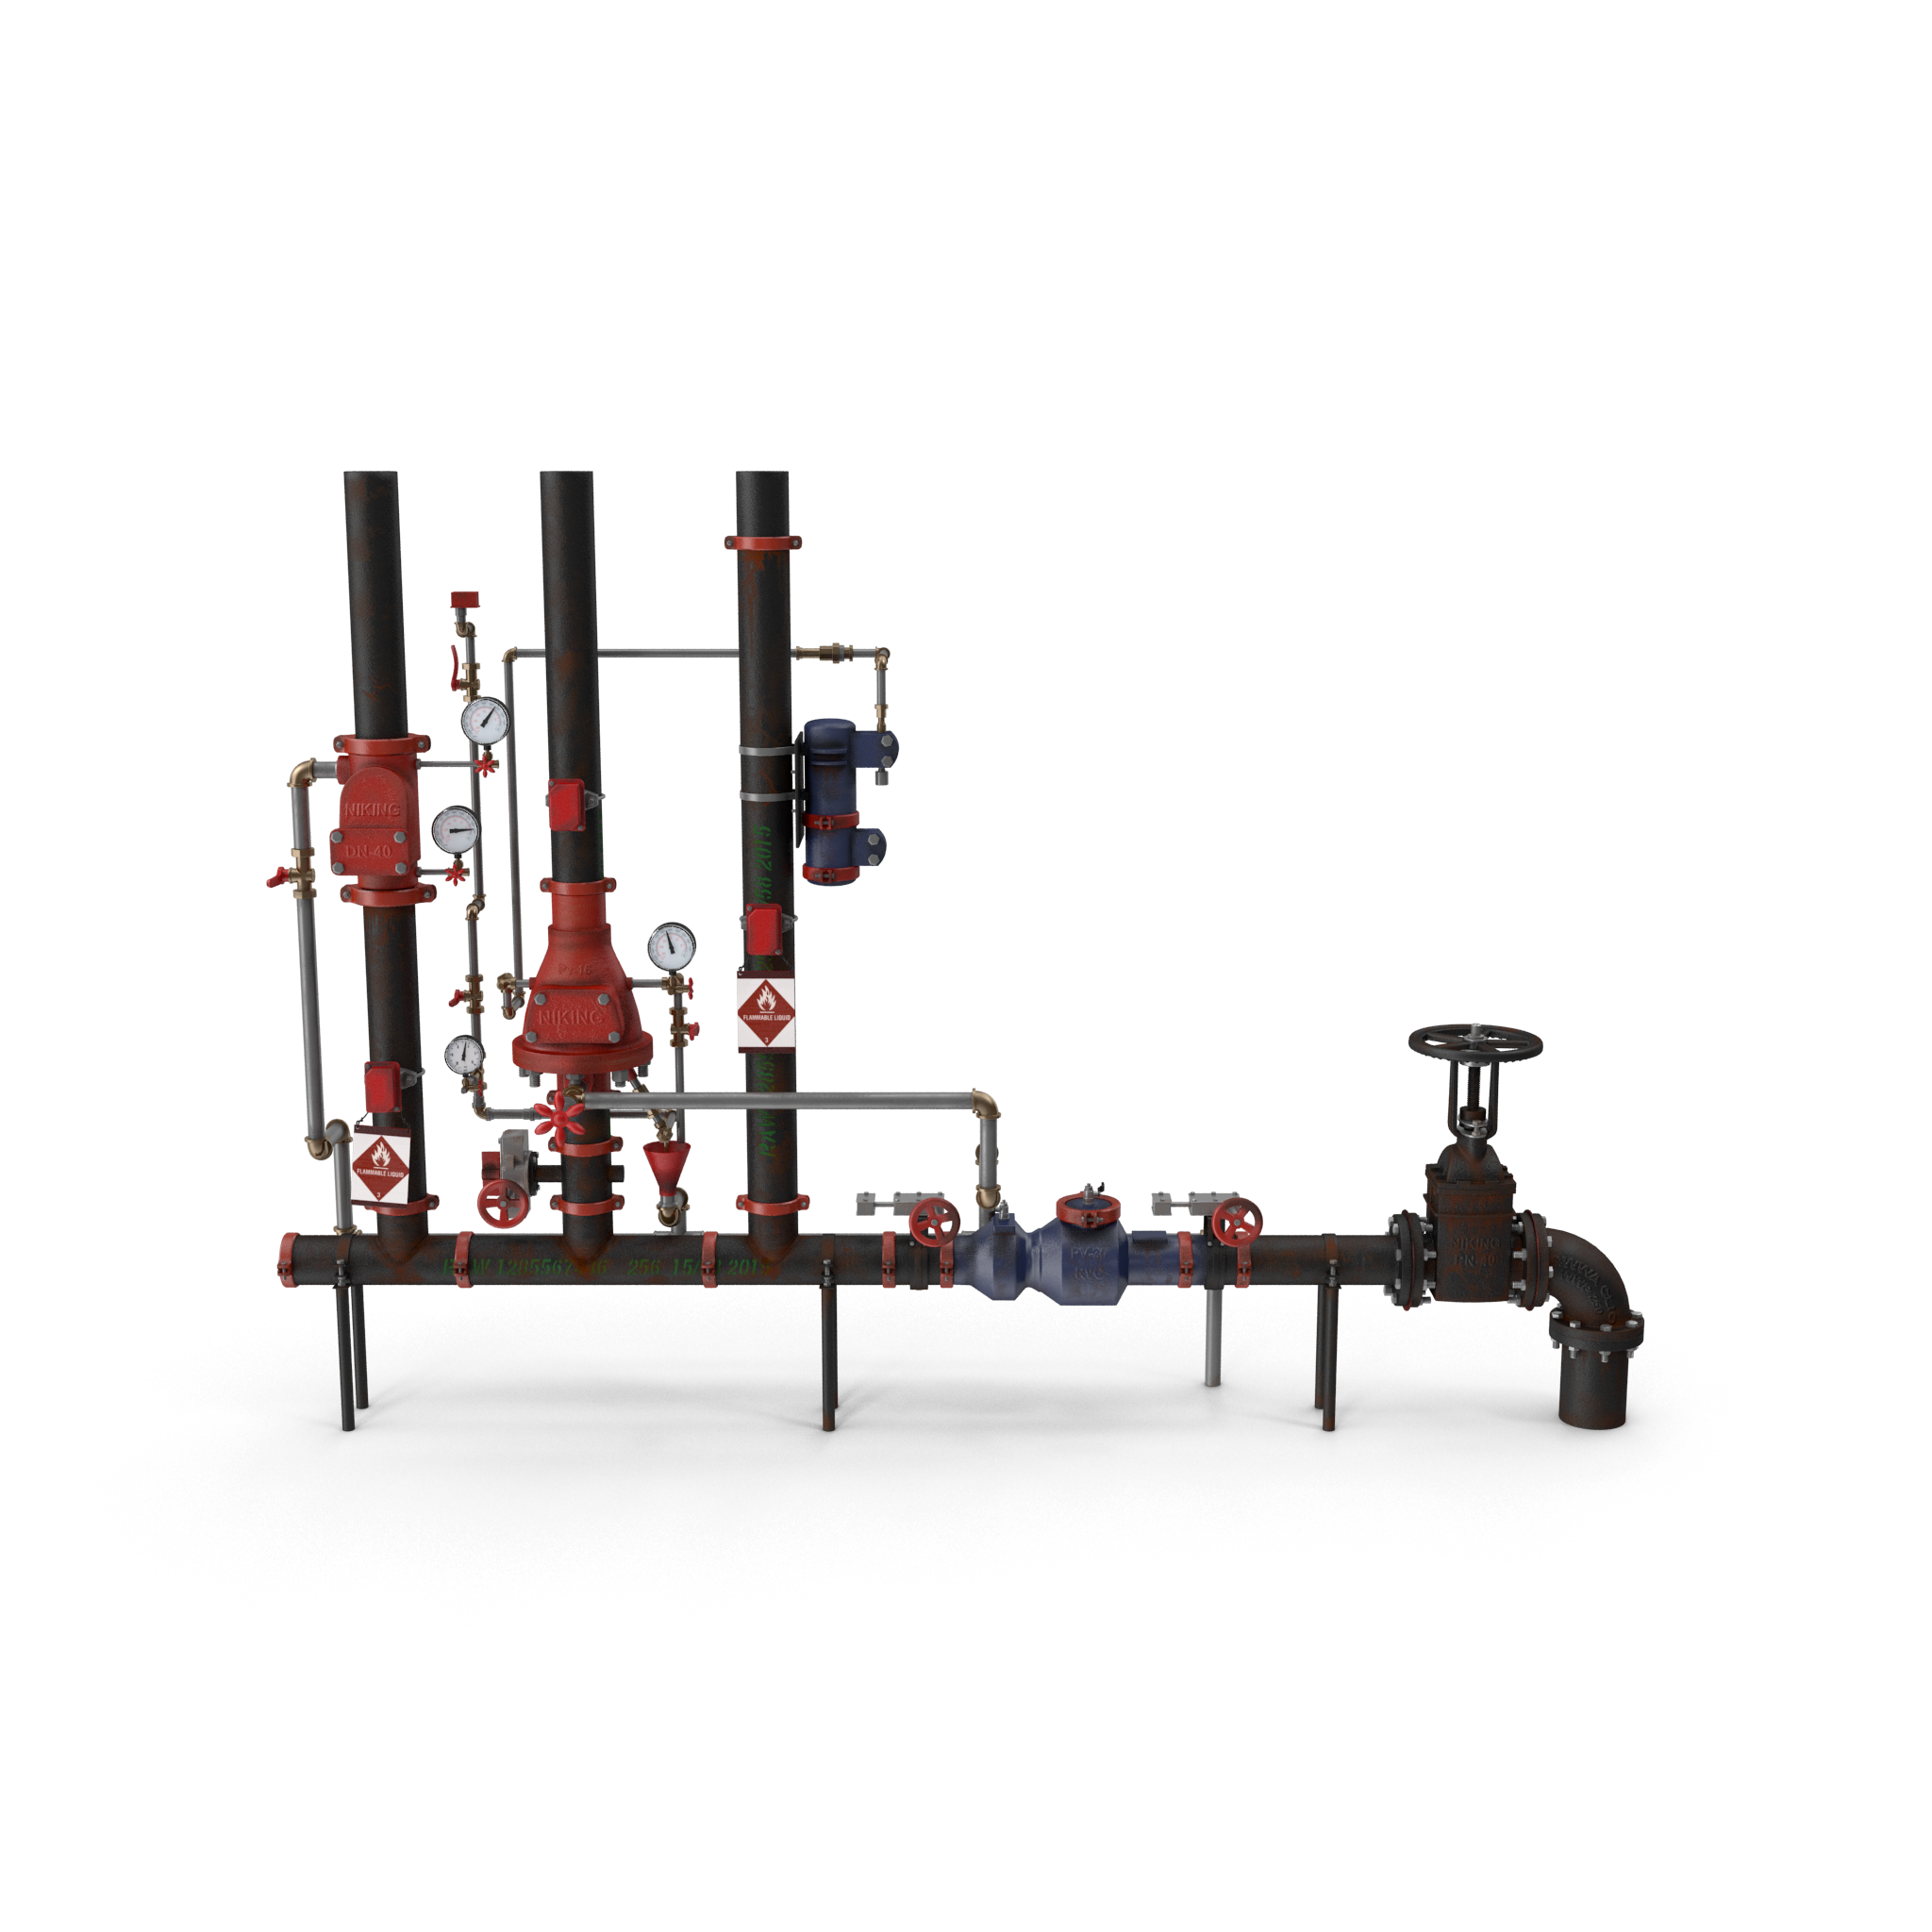 Industrial Pipes.H01.2k (2)